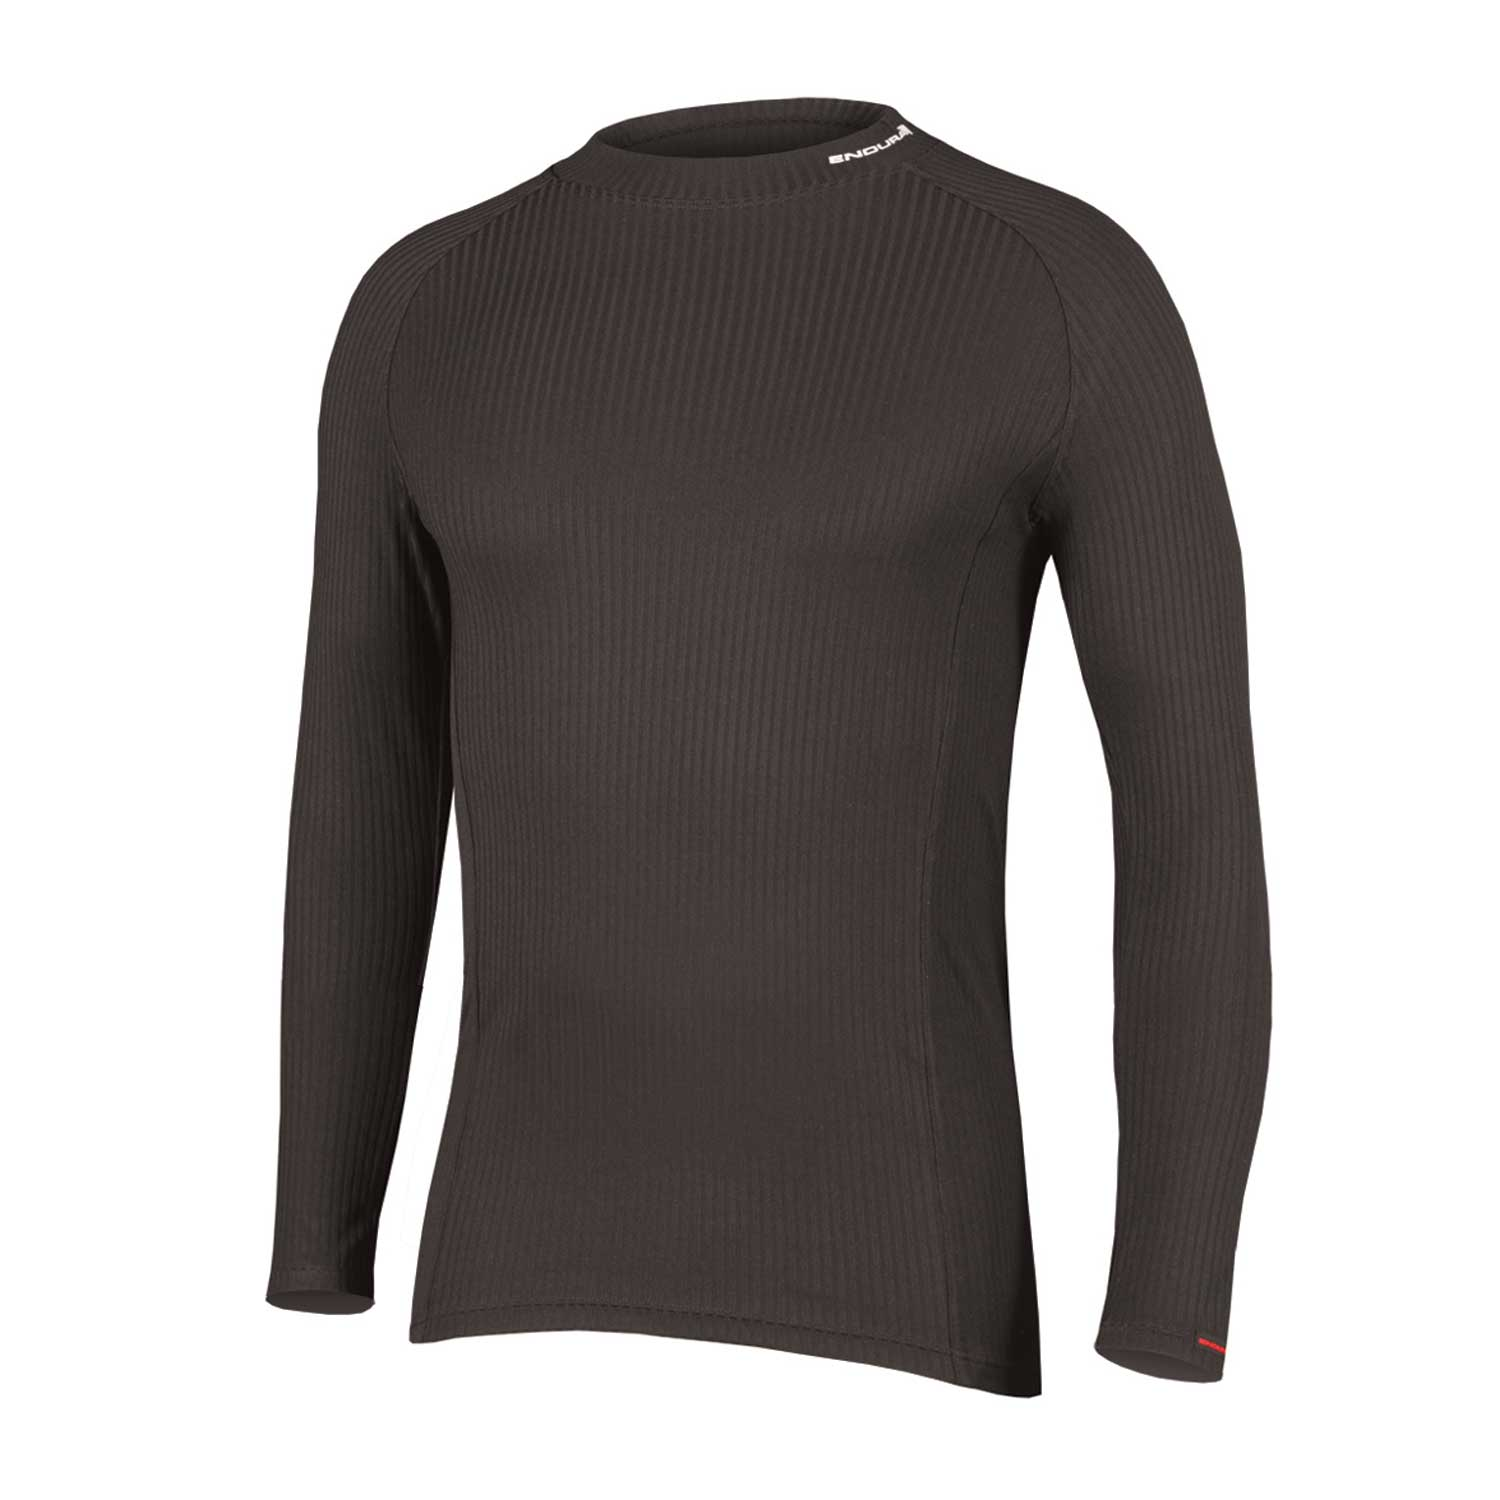 Transrib L/S Baselayer